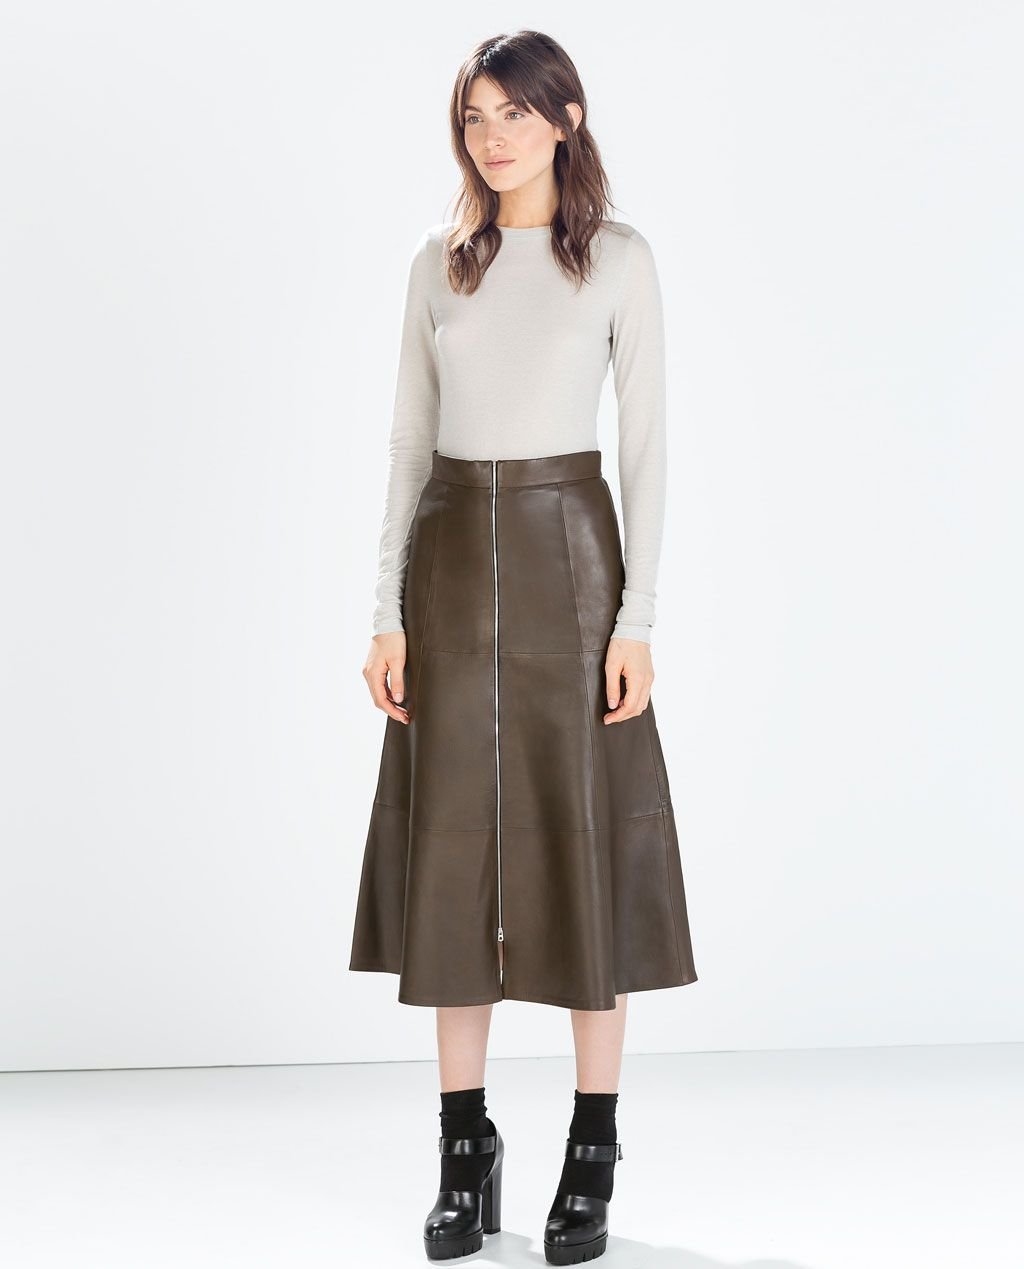 ZARA - WOMAN - LEATHER SKIRT